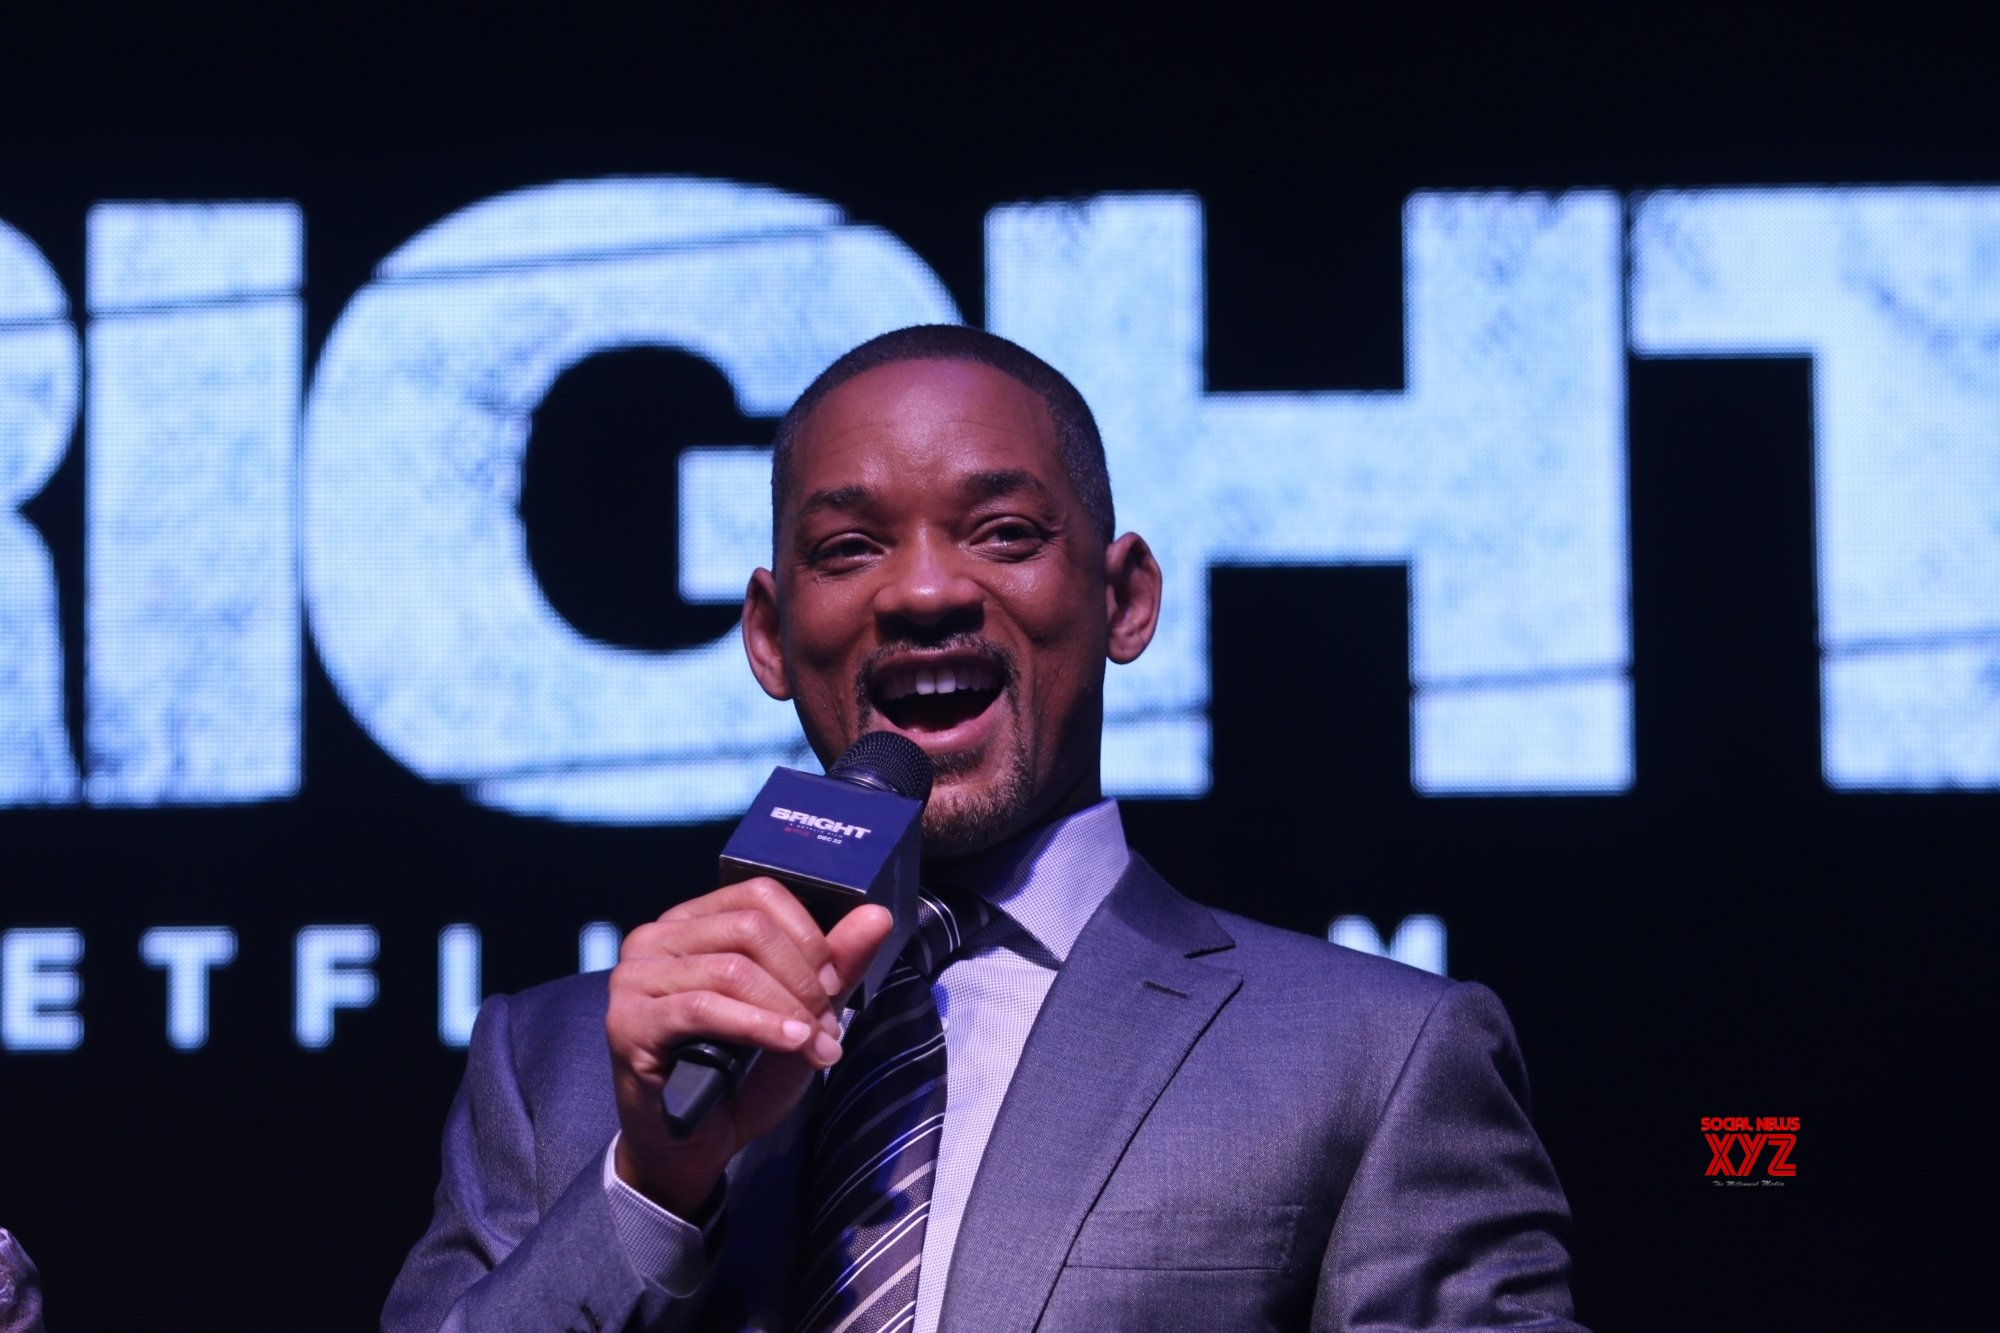 Will Smith a generous artiste: Guy Ritchie